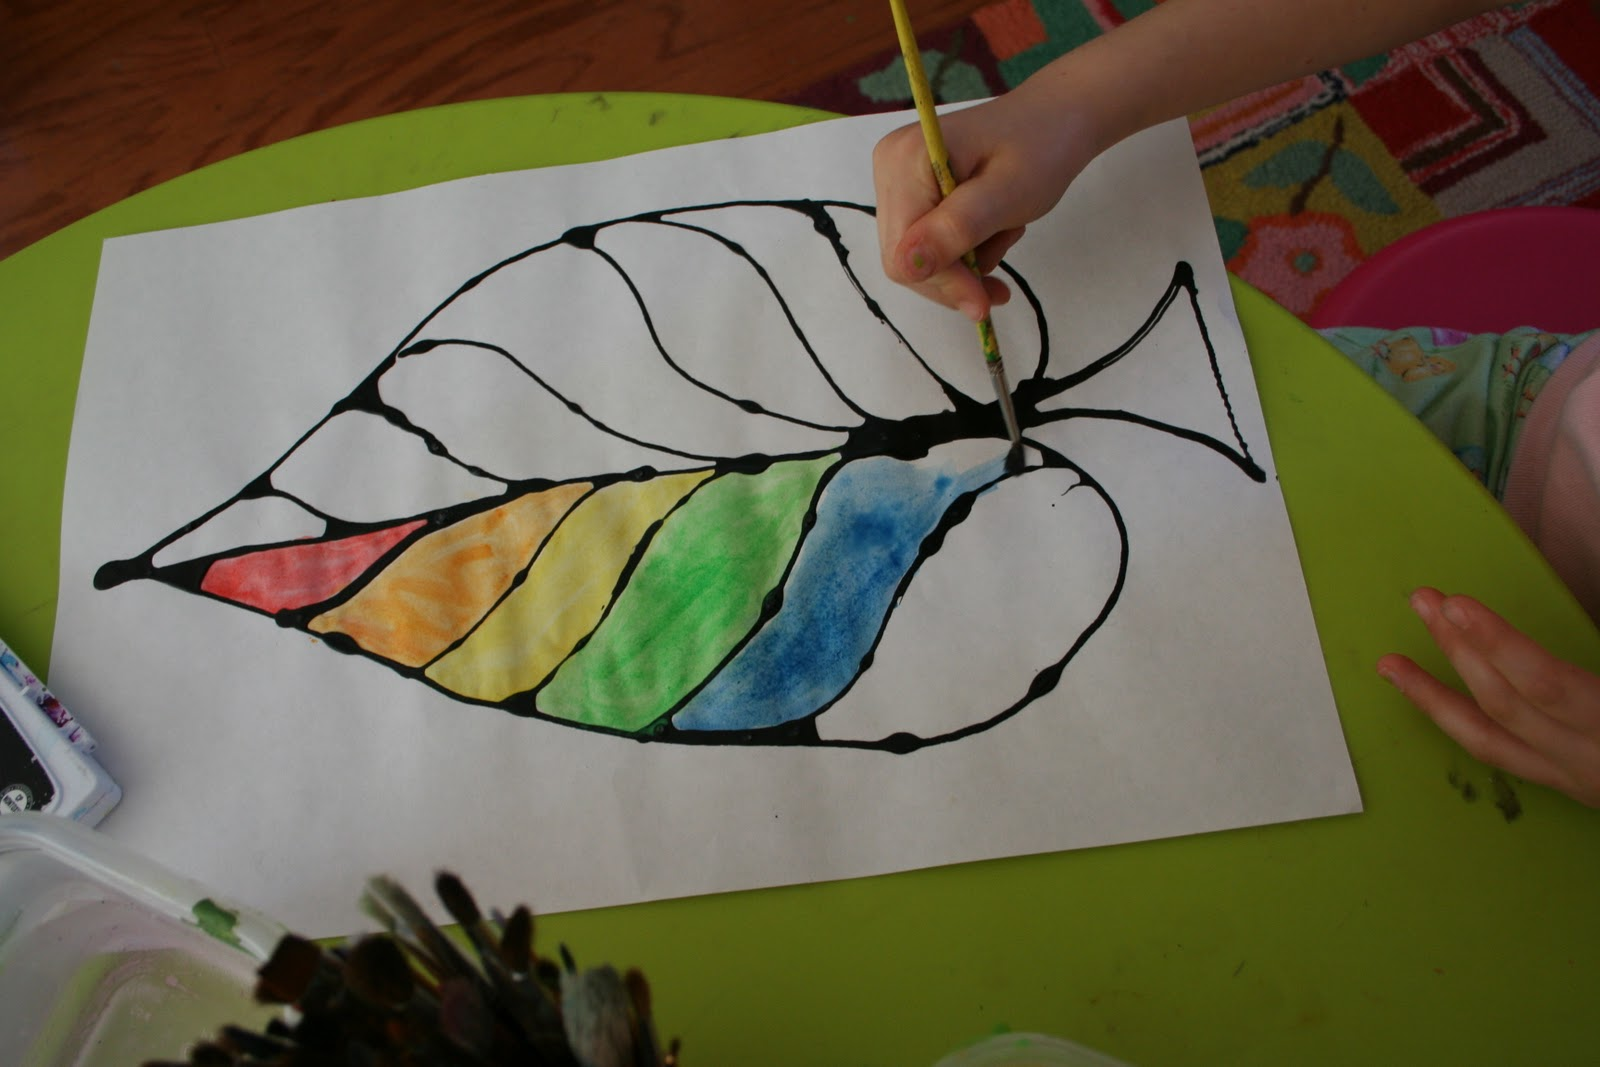 Leaf Shapes for Crafts http://pinkandgreenmama.blogspot.com/2011/10/easy-fall-kid-craft-colored-glue-leaves.html